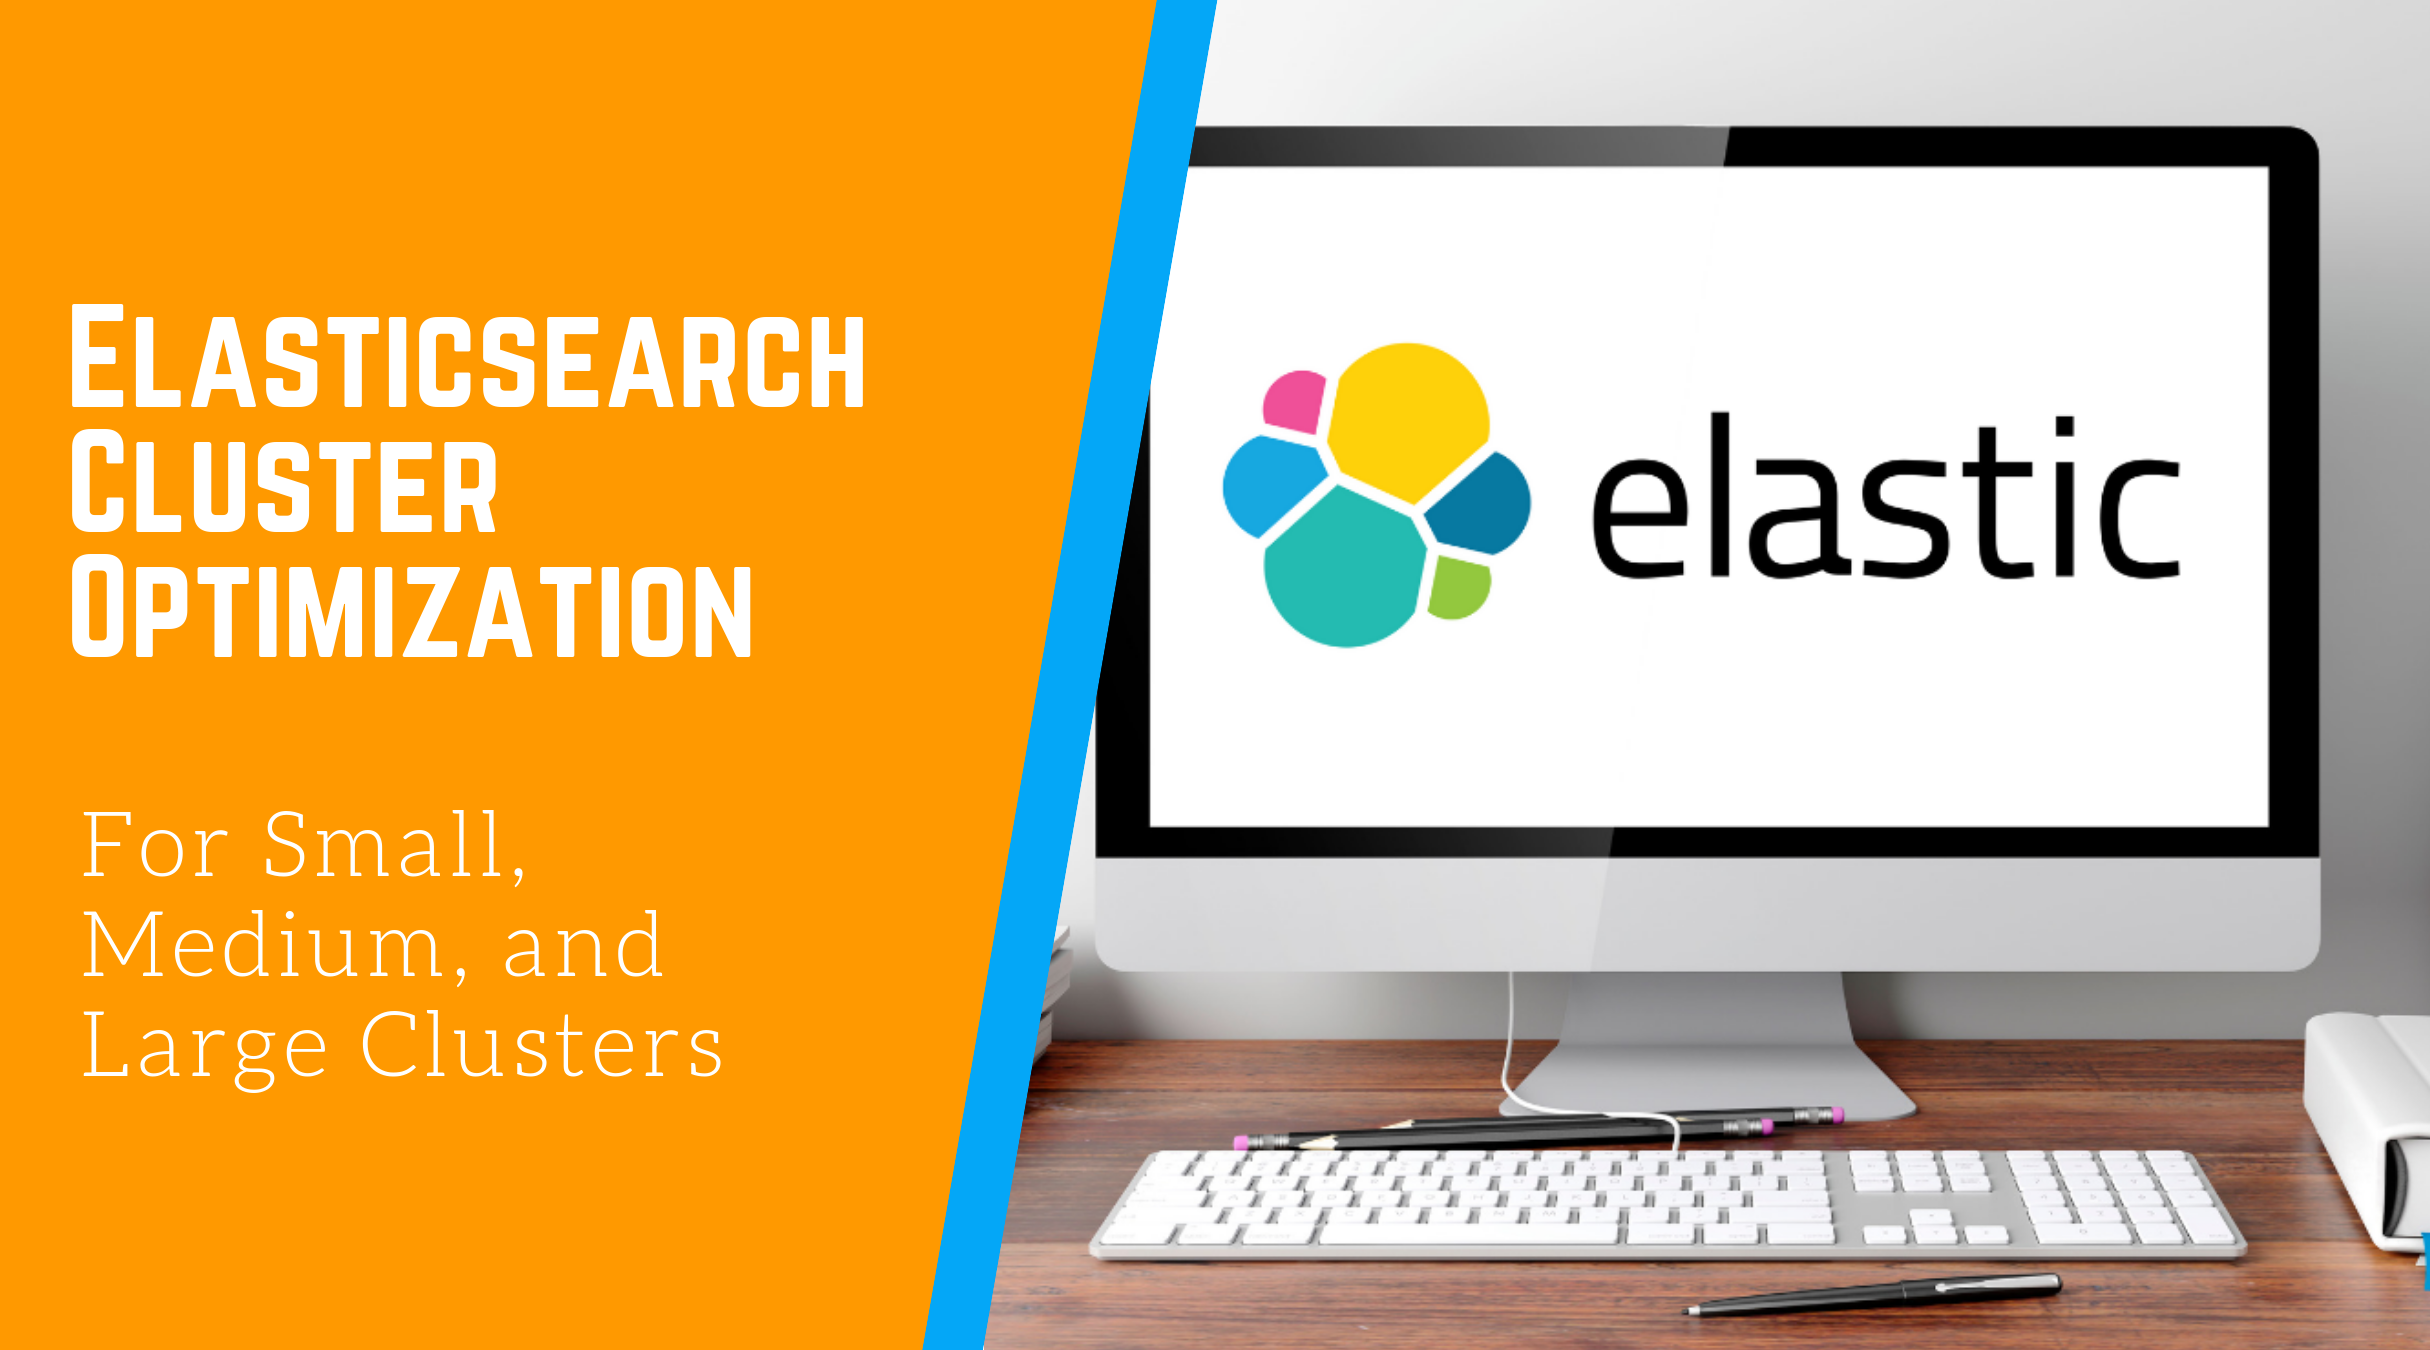 "The image reads ""Elasticsearch Cluster Optimization,"" and the right side contains a picture of a monitor with the Elastic logo."